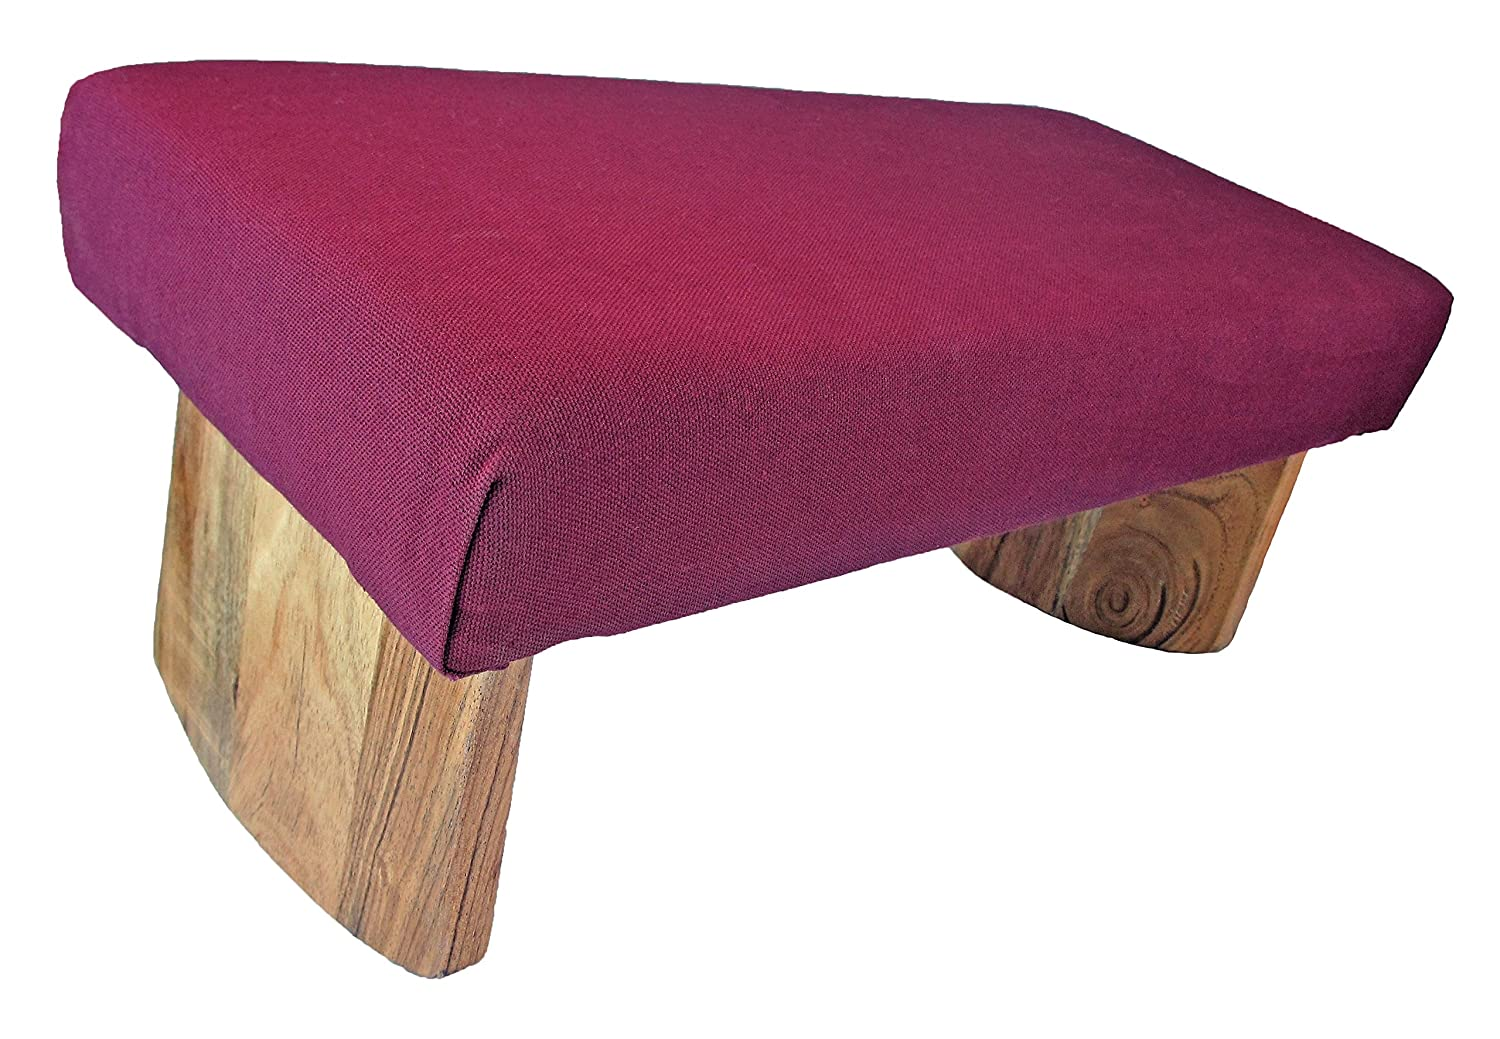 Meditation Bench- Acacia wood